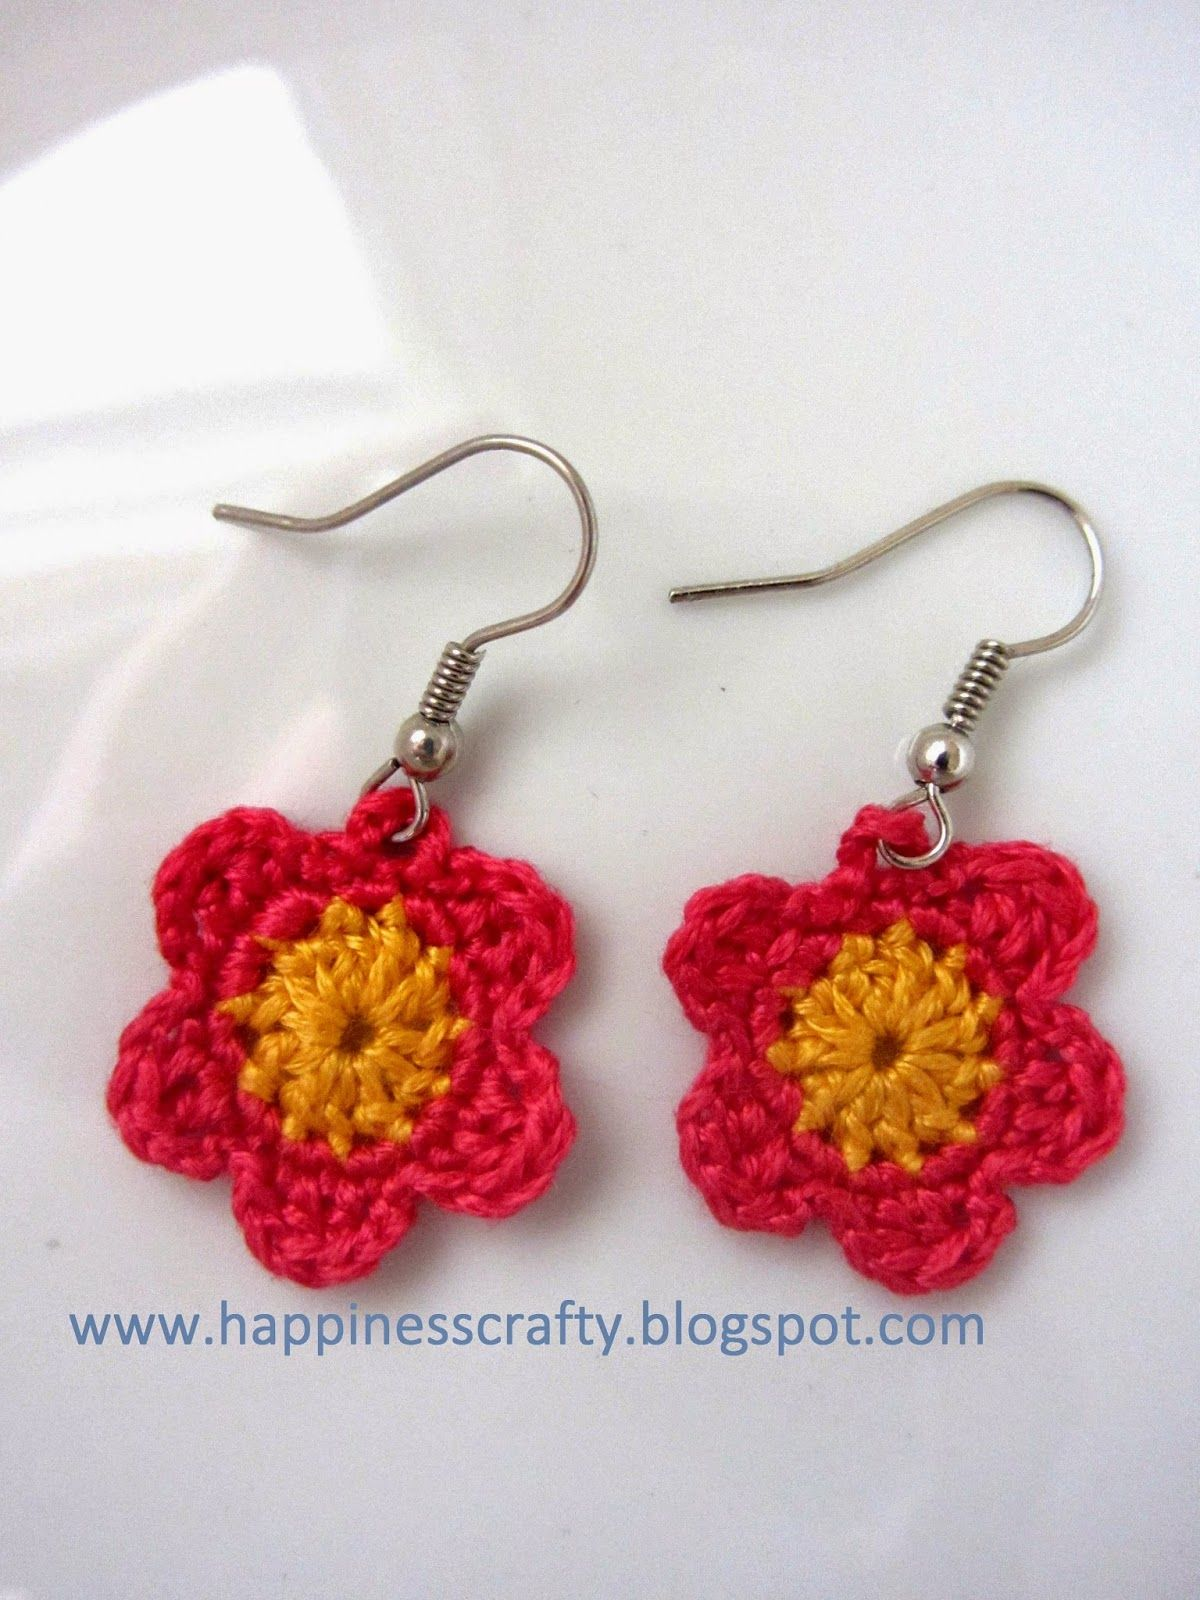 Crochet Flower Earrings ~ Free Pattern | tığ işi küpeler | Pinterest ...